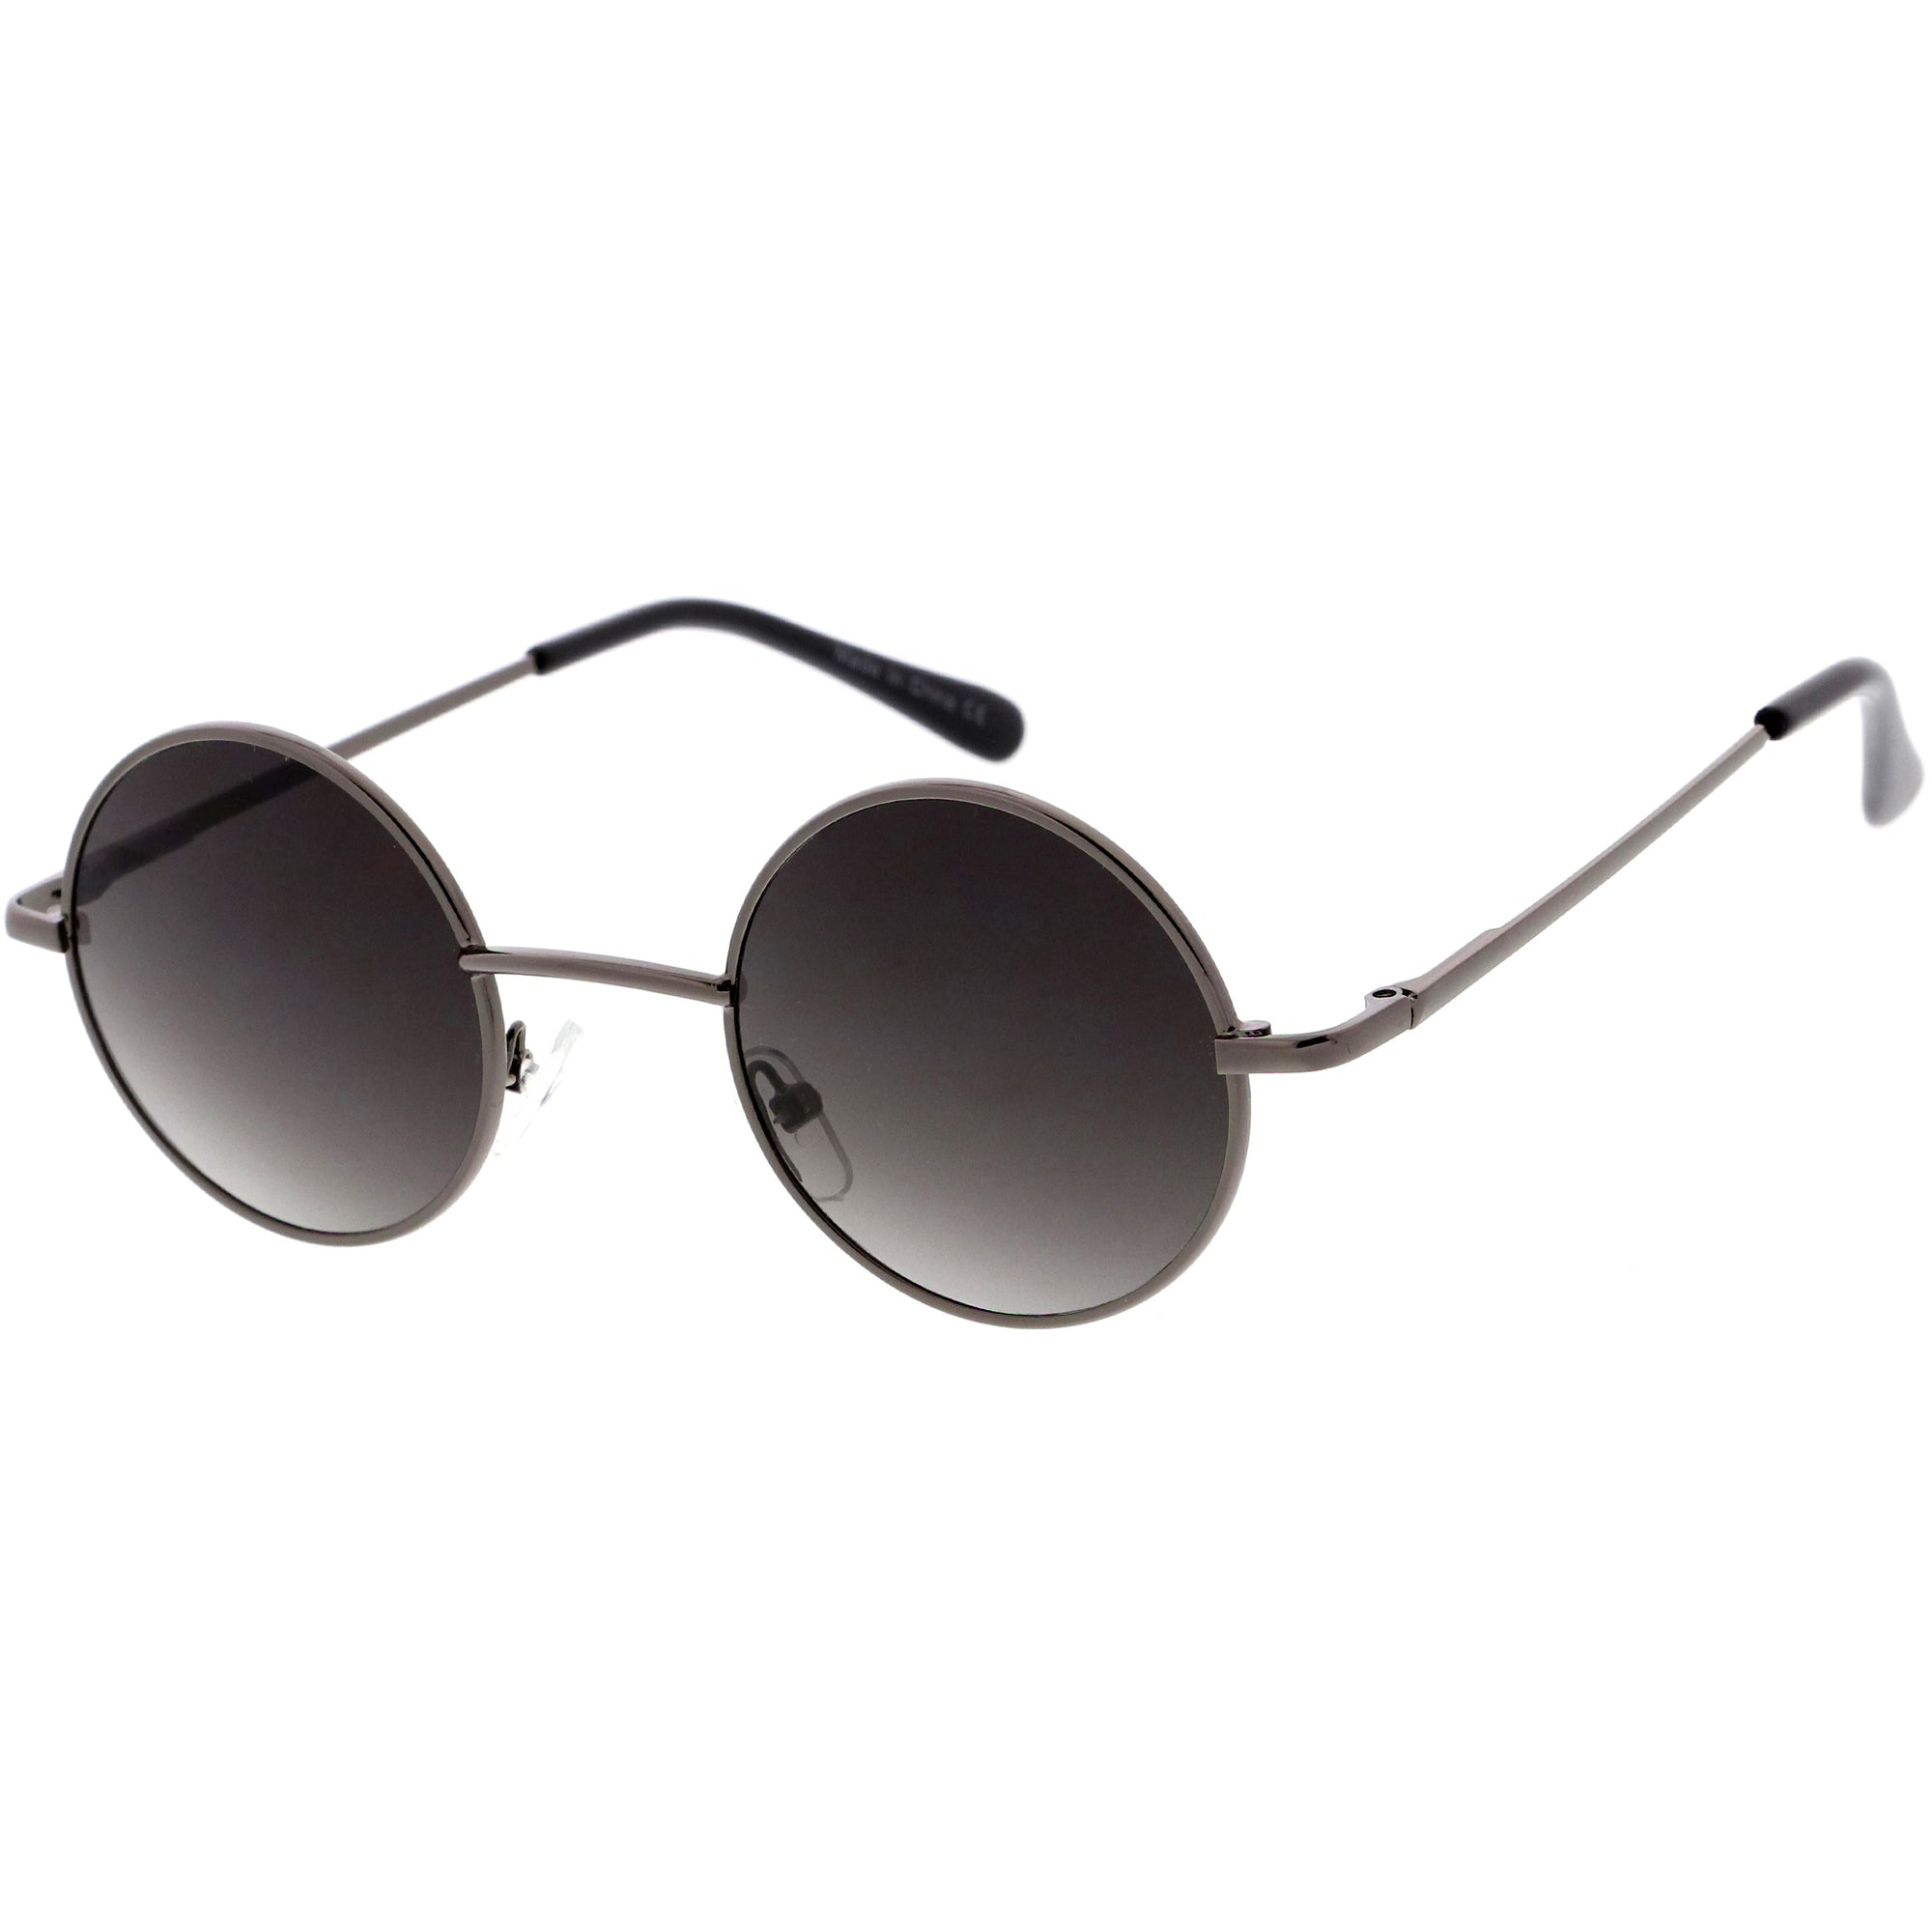 Retro Small Lennon Style Neutral Colored Lens Round Sunglasses 45mm C997